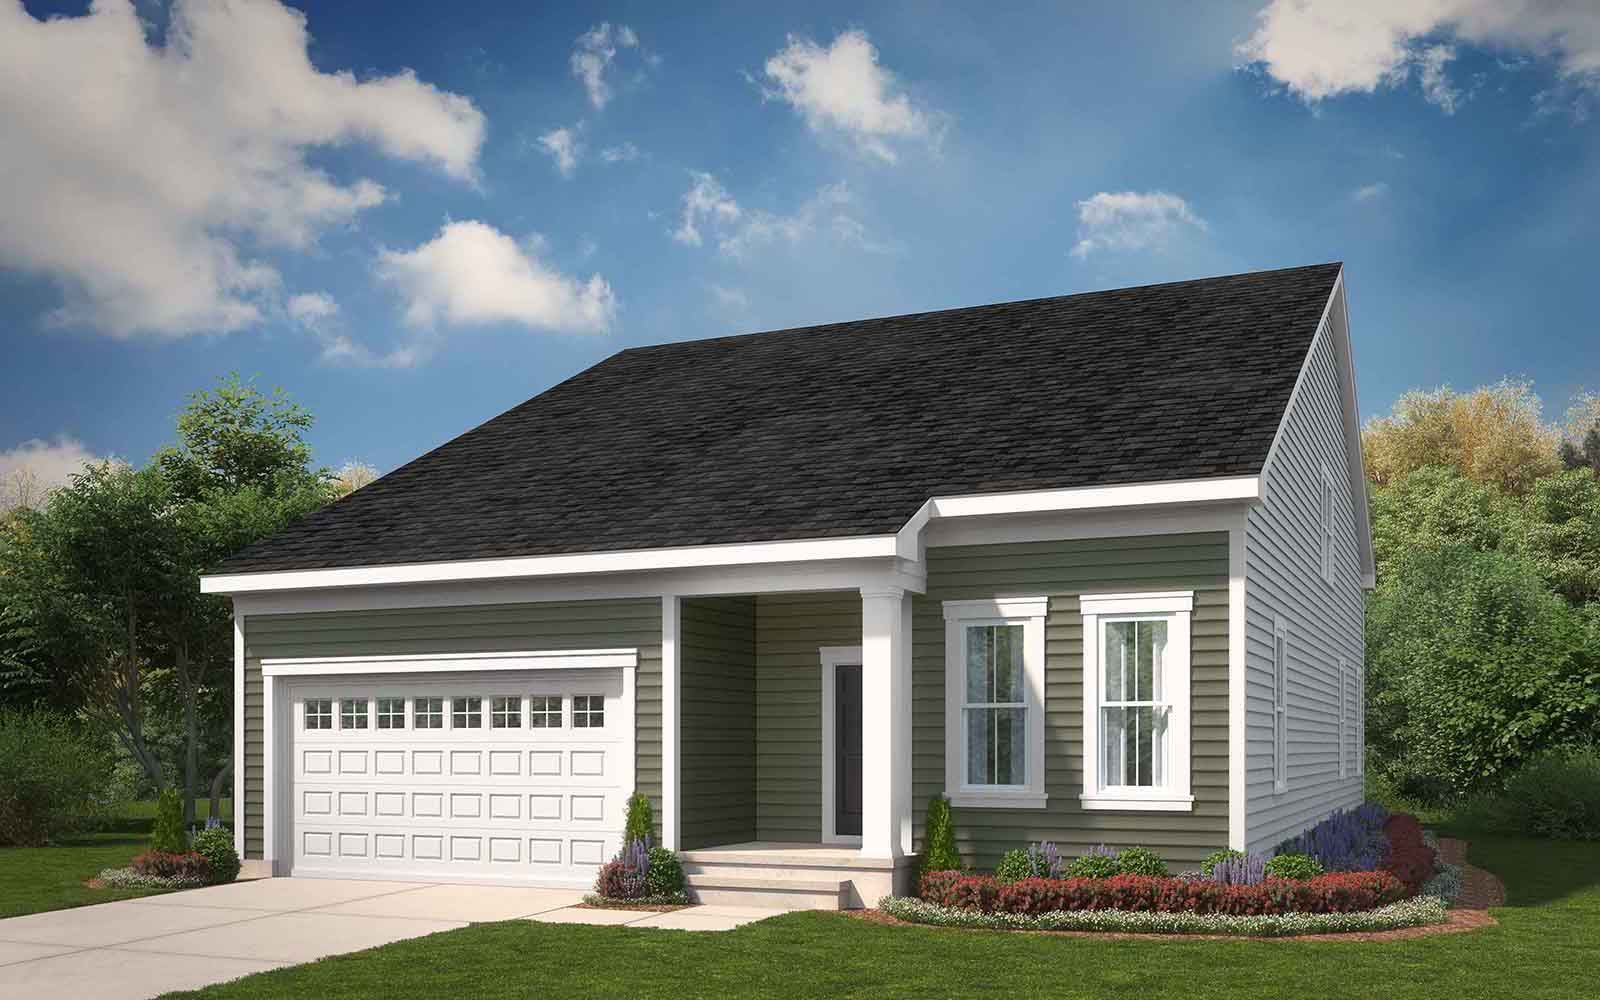 Exterior:Elevation 1 of the Picasso a home design offered at Heritage Shores in Bridgeville DE